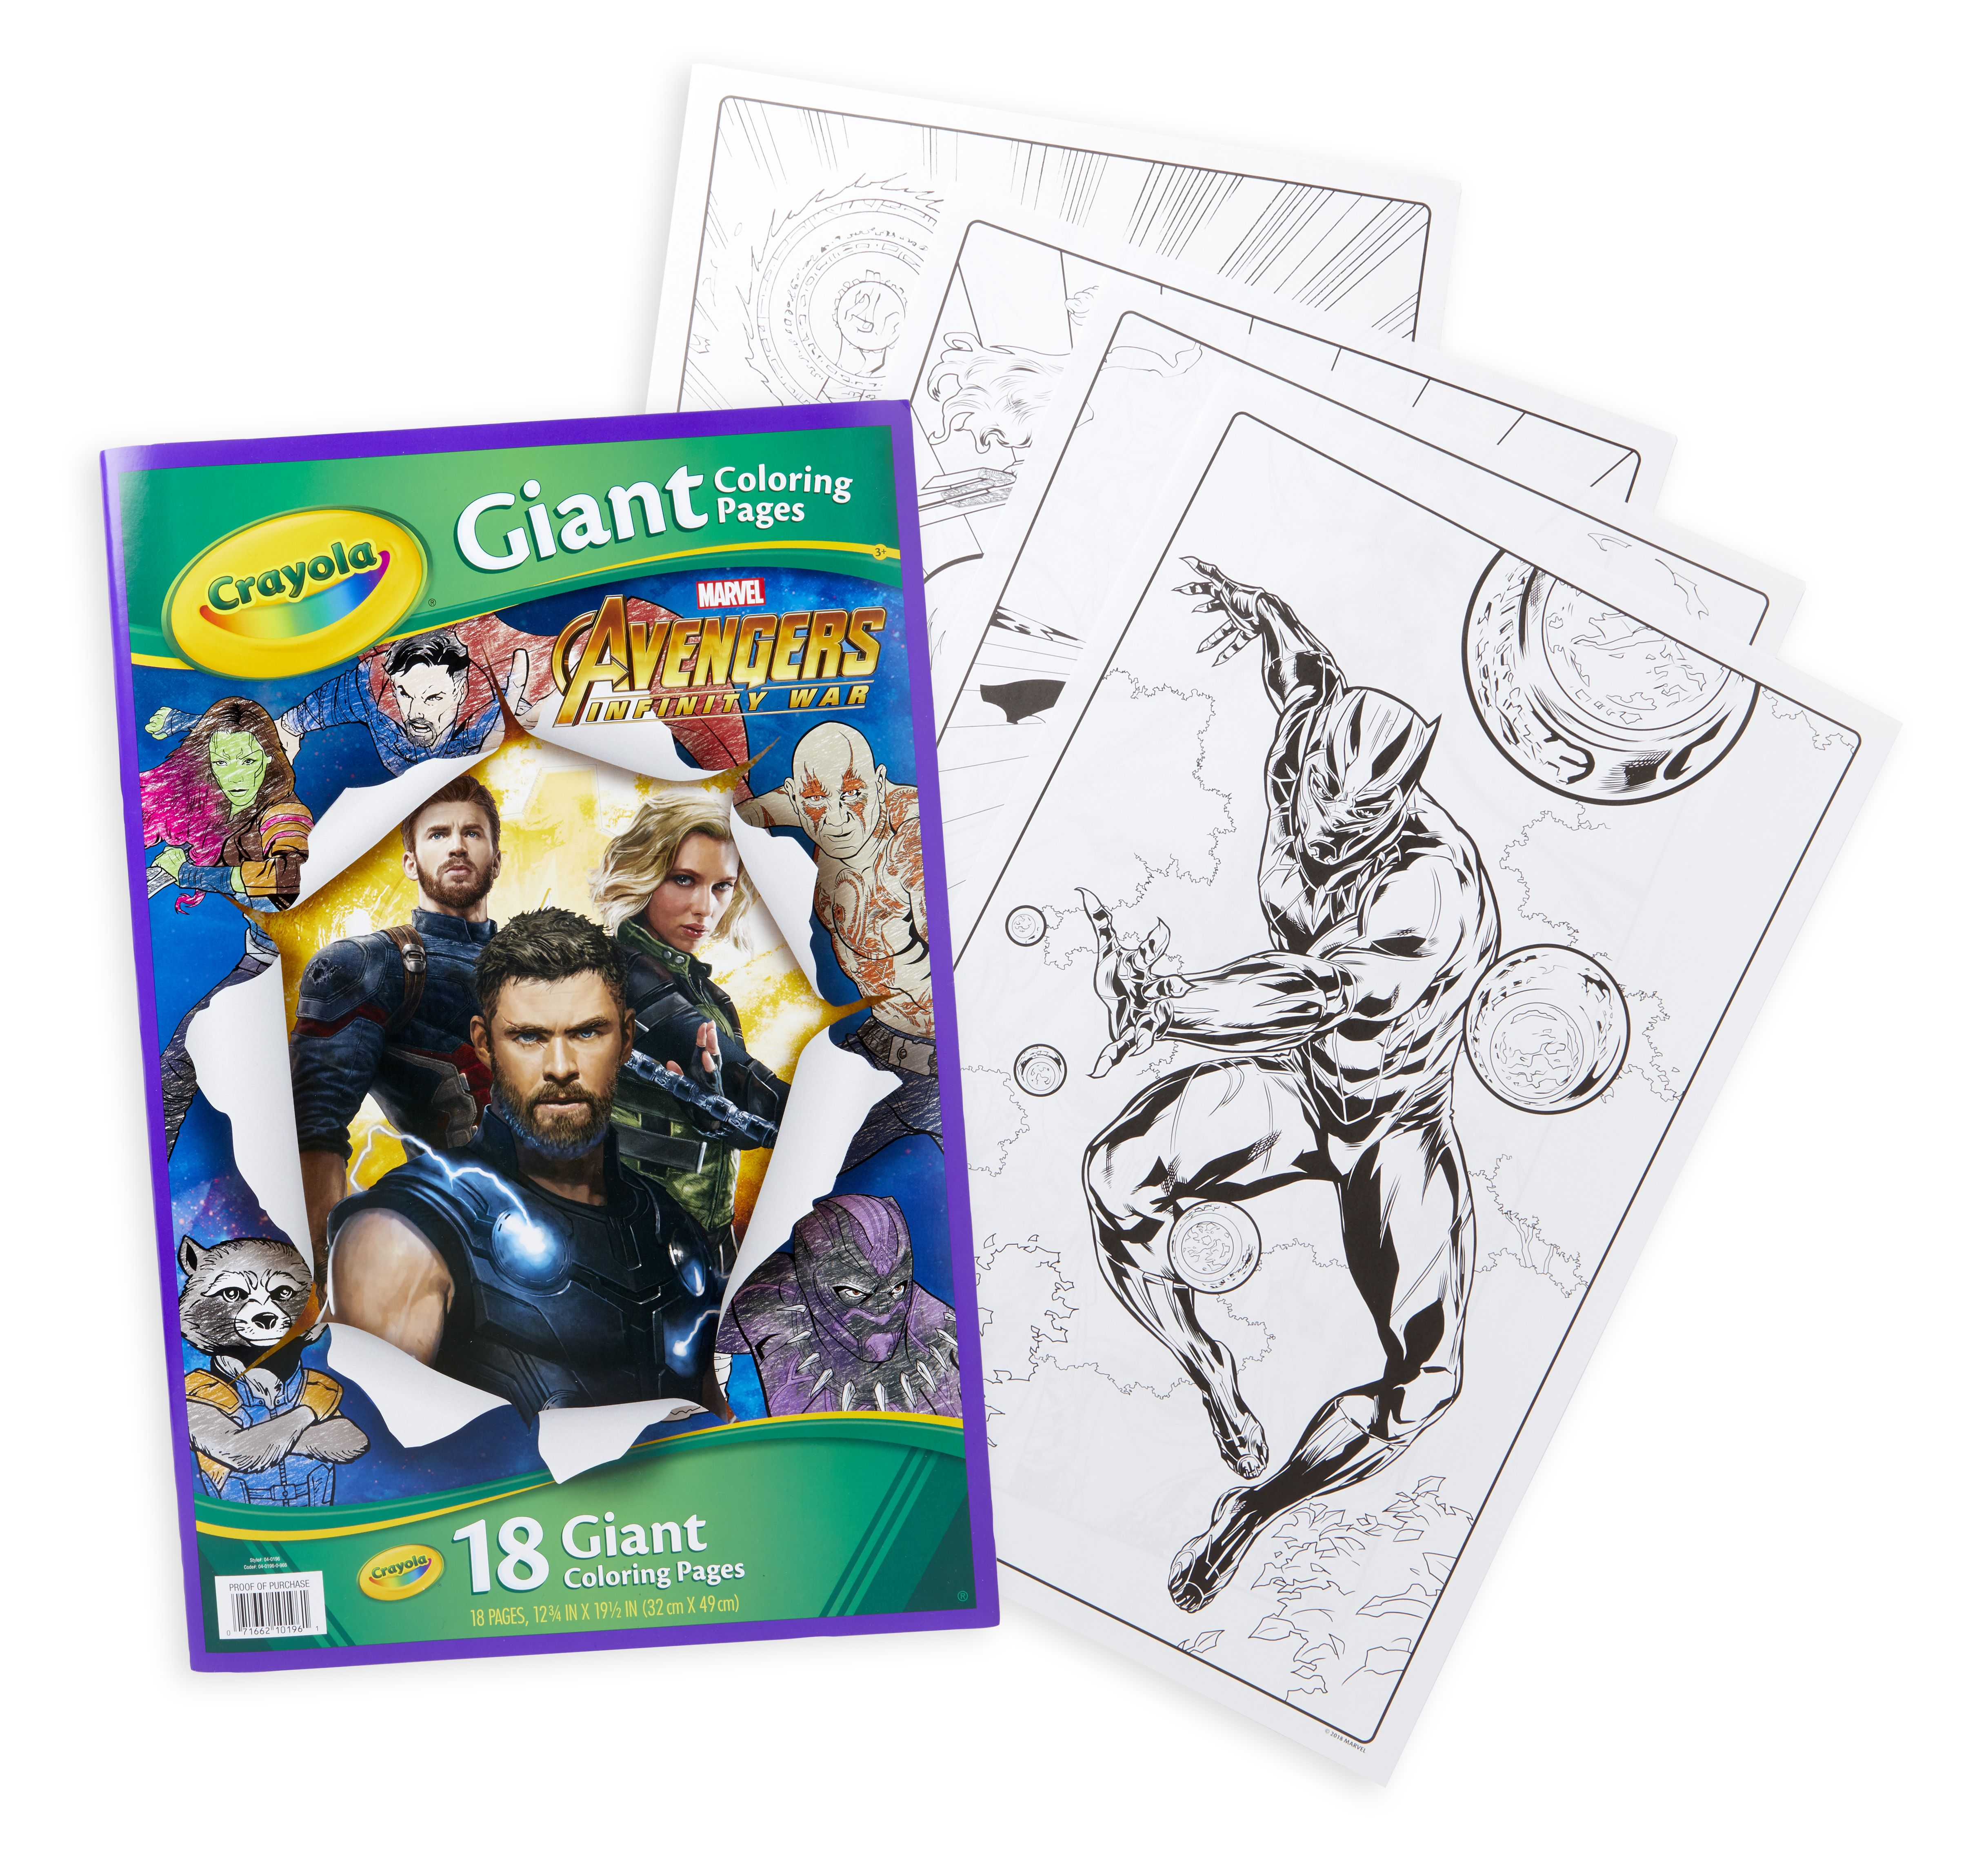 Crayola Avengers Giant Coloring Pages 18 Sheets For Ages 3 Walmart Inventory Checker Detailed Coloring Pages Barbie Coloring Pages Unicorn Coloring Pages